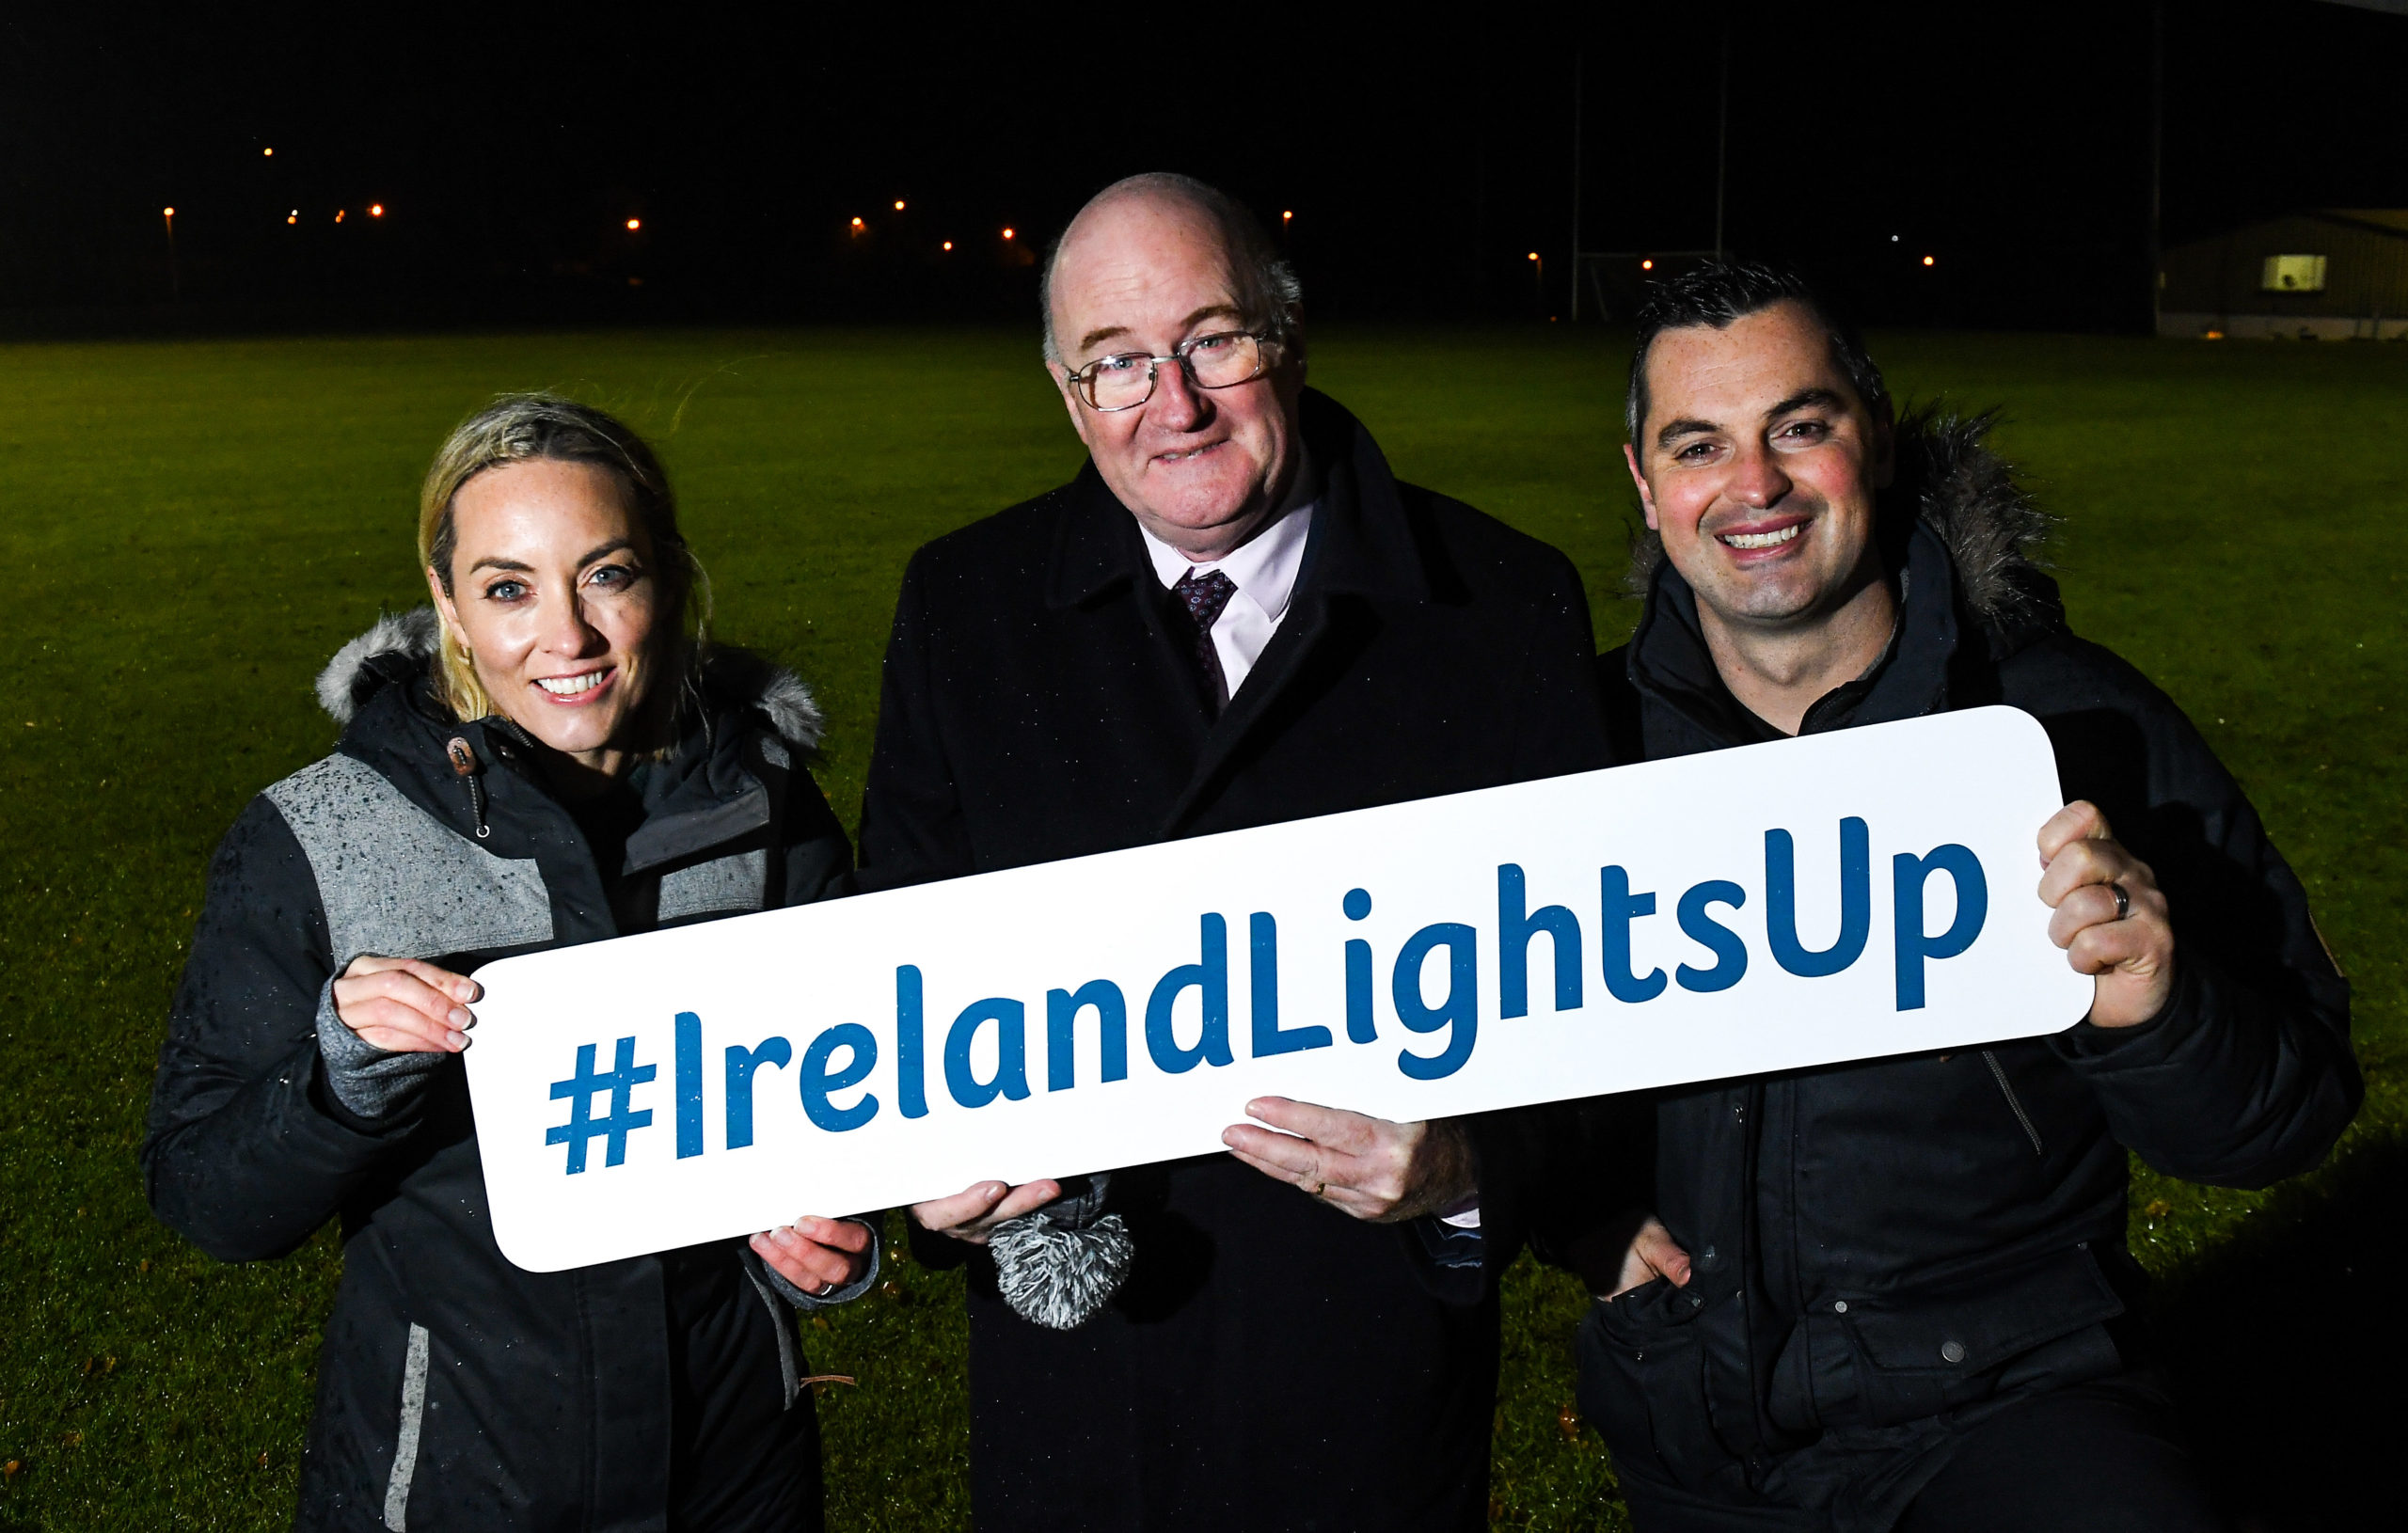 Ireland Lights Up 2020